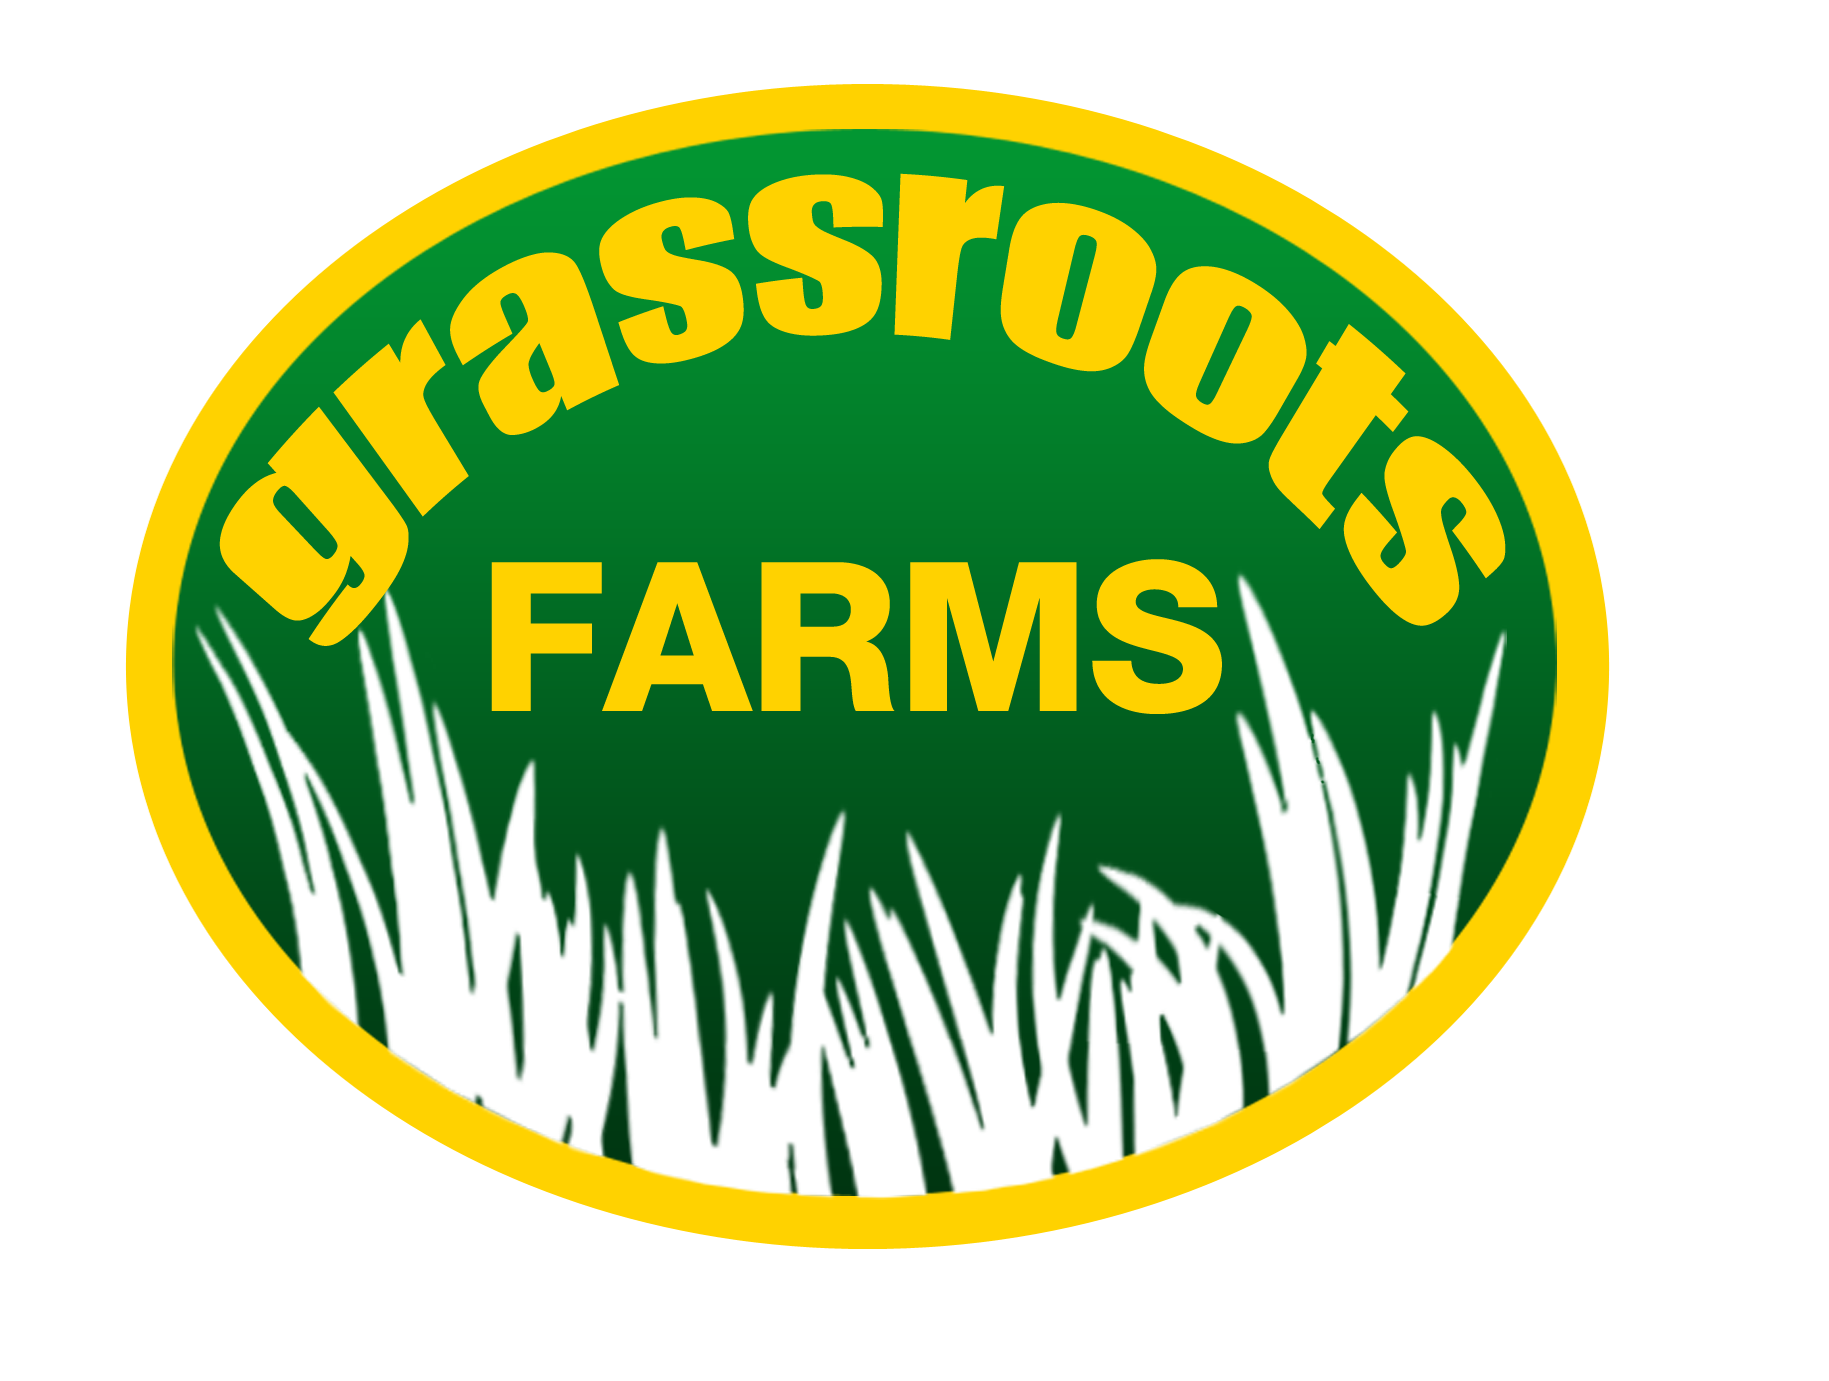 Grassroots Farms Logo.png